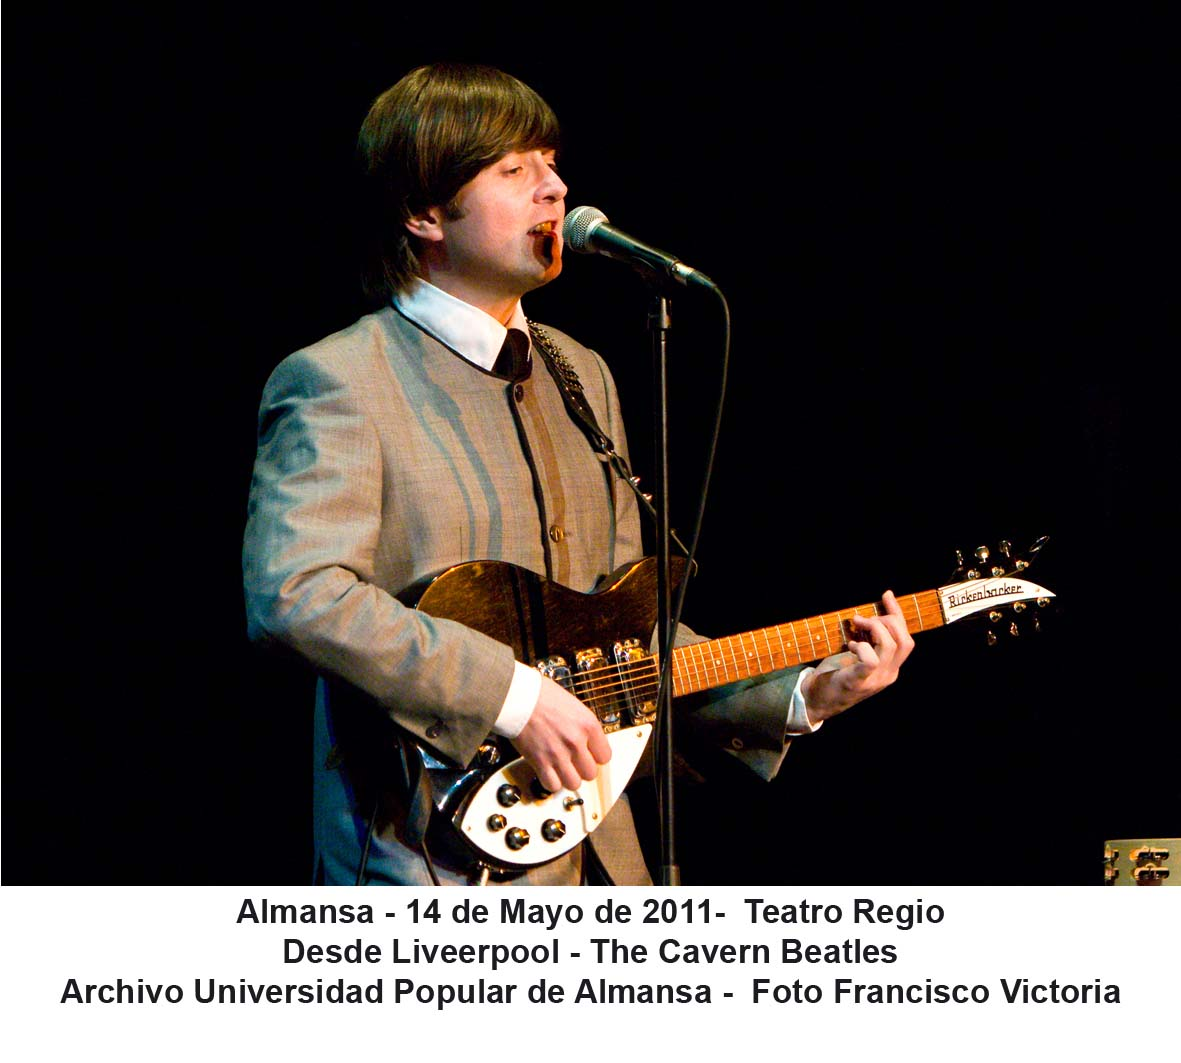 110514 THE CAVERN BEATLES 02